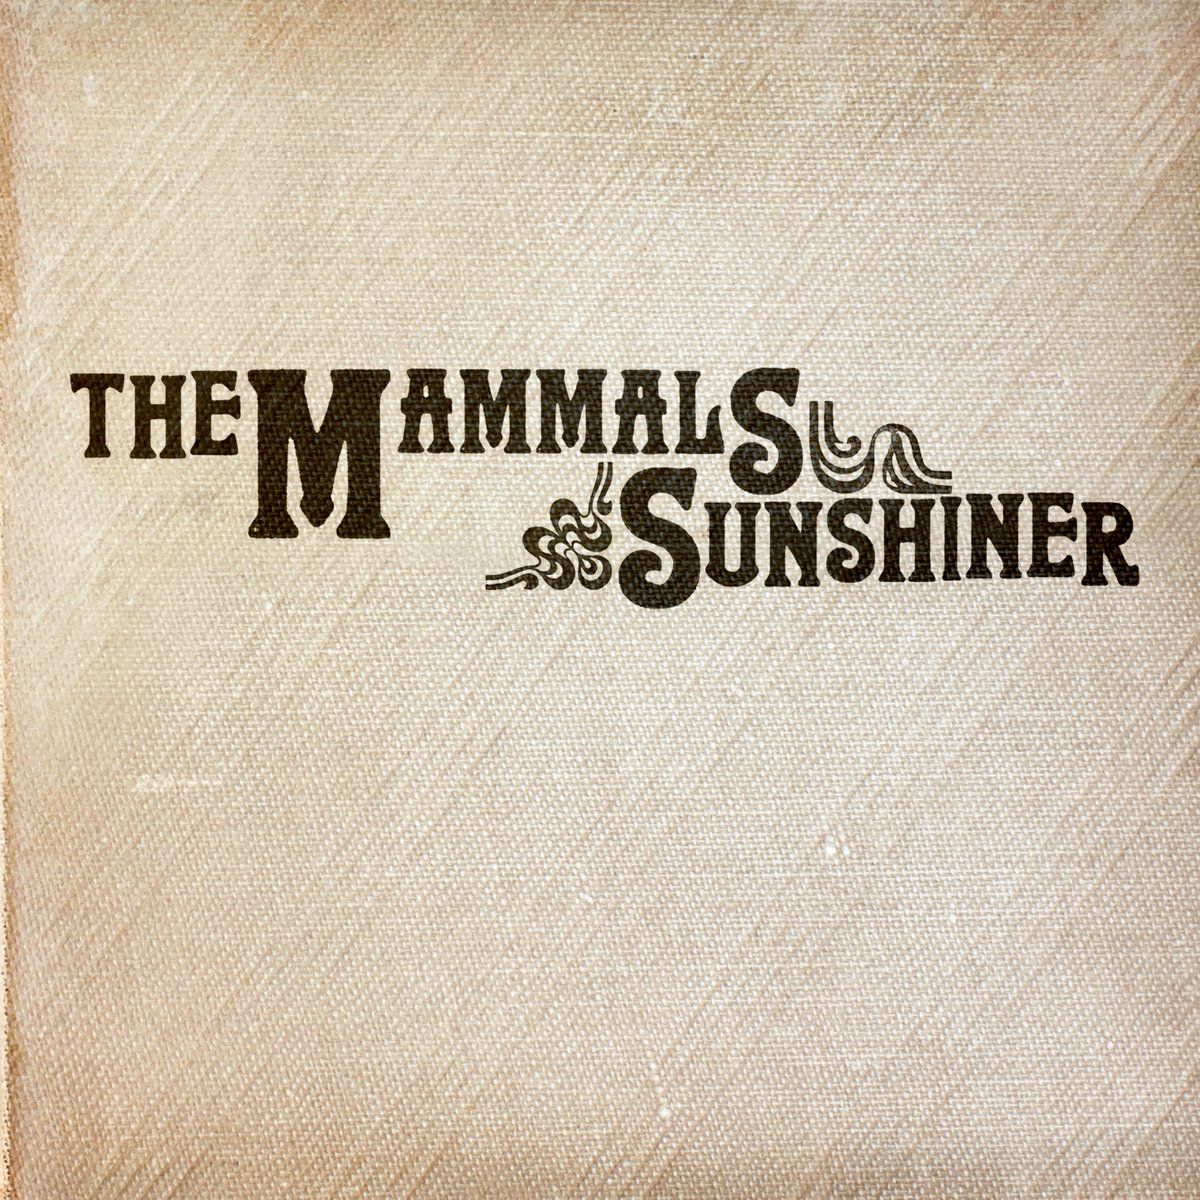 the mammals sunshiner